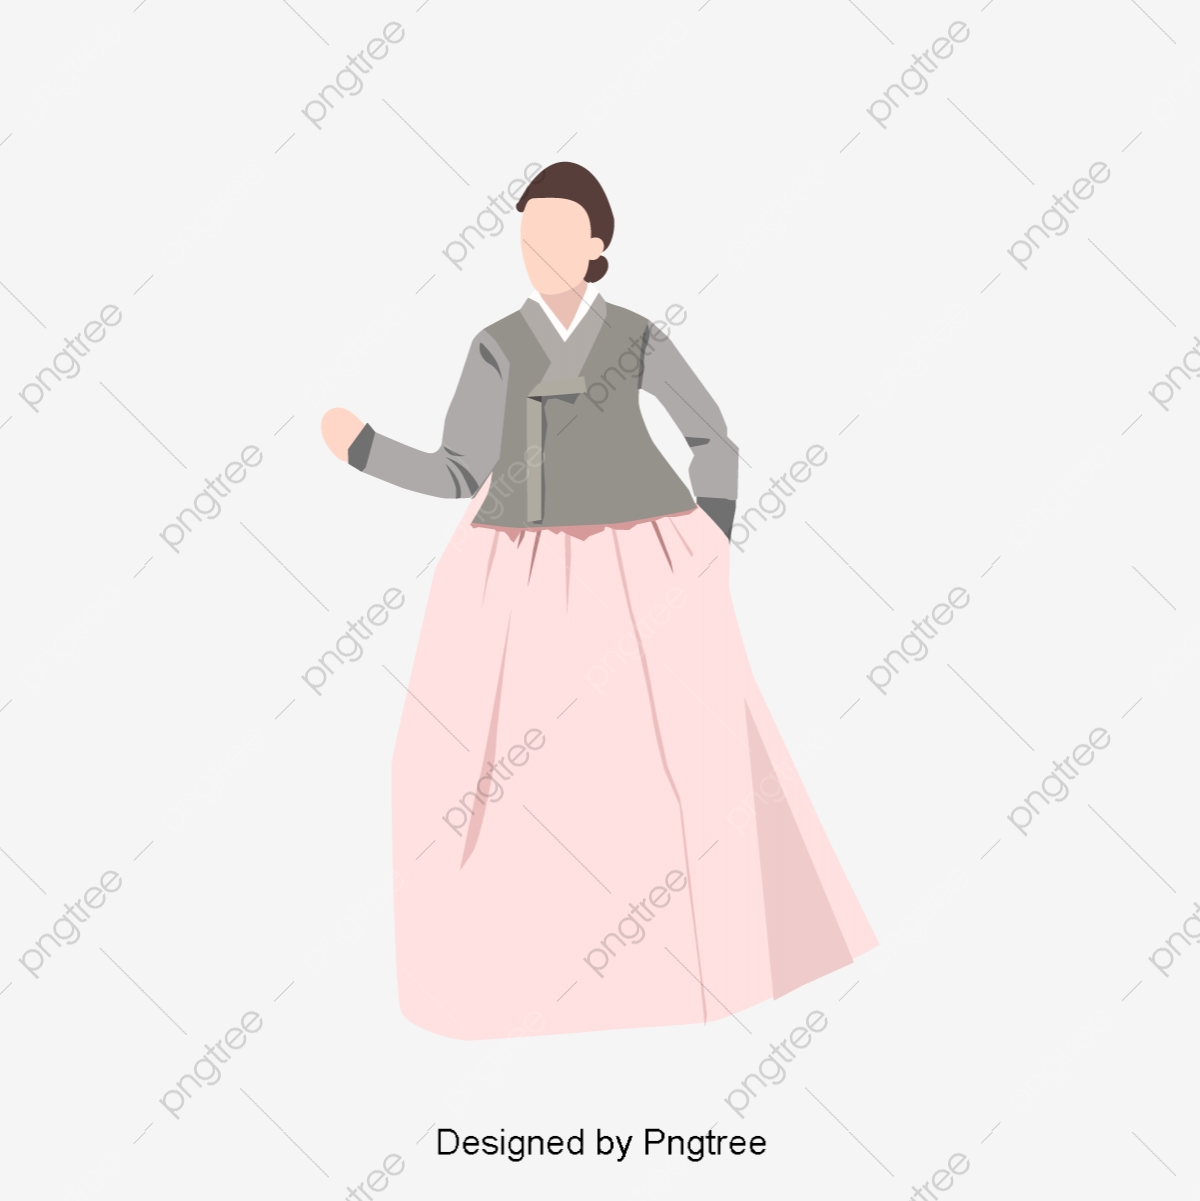 Korean Traditional Dress Of The Han Korea Costume Hanbok Png And